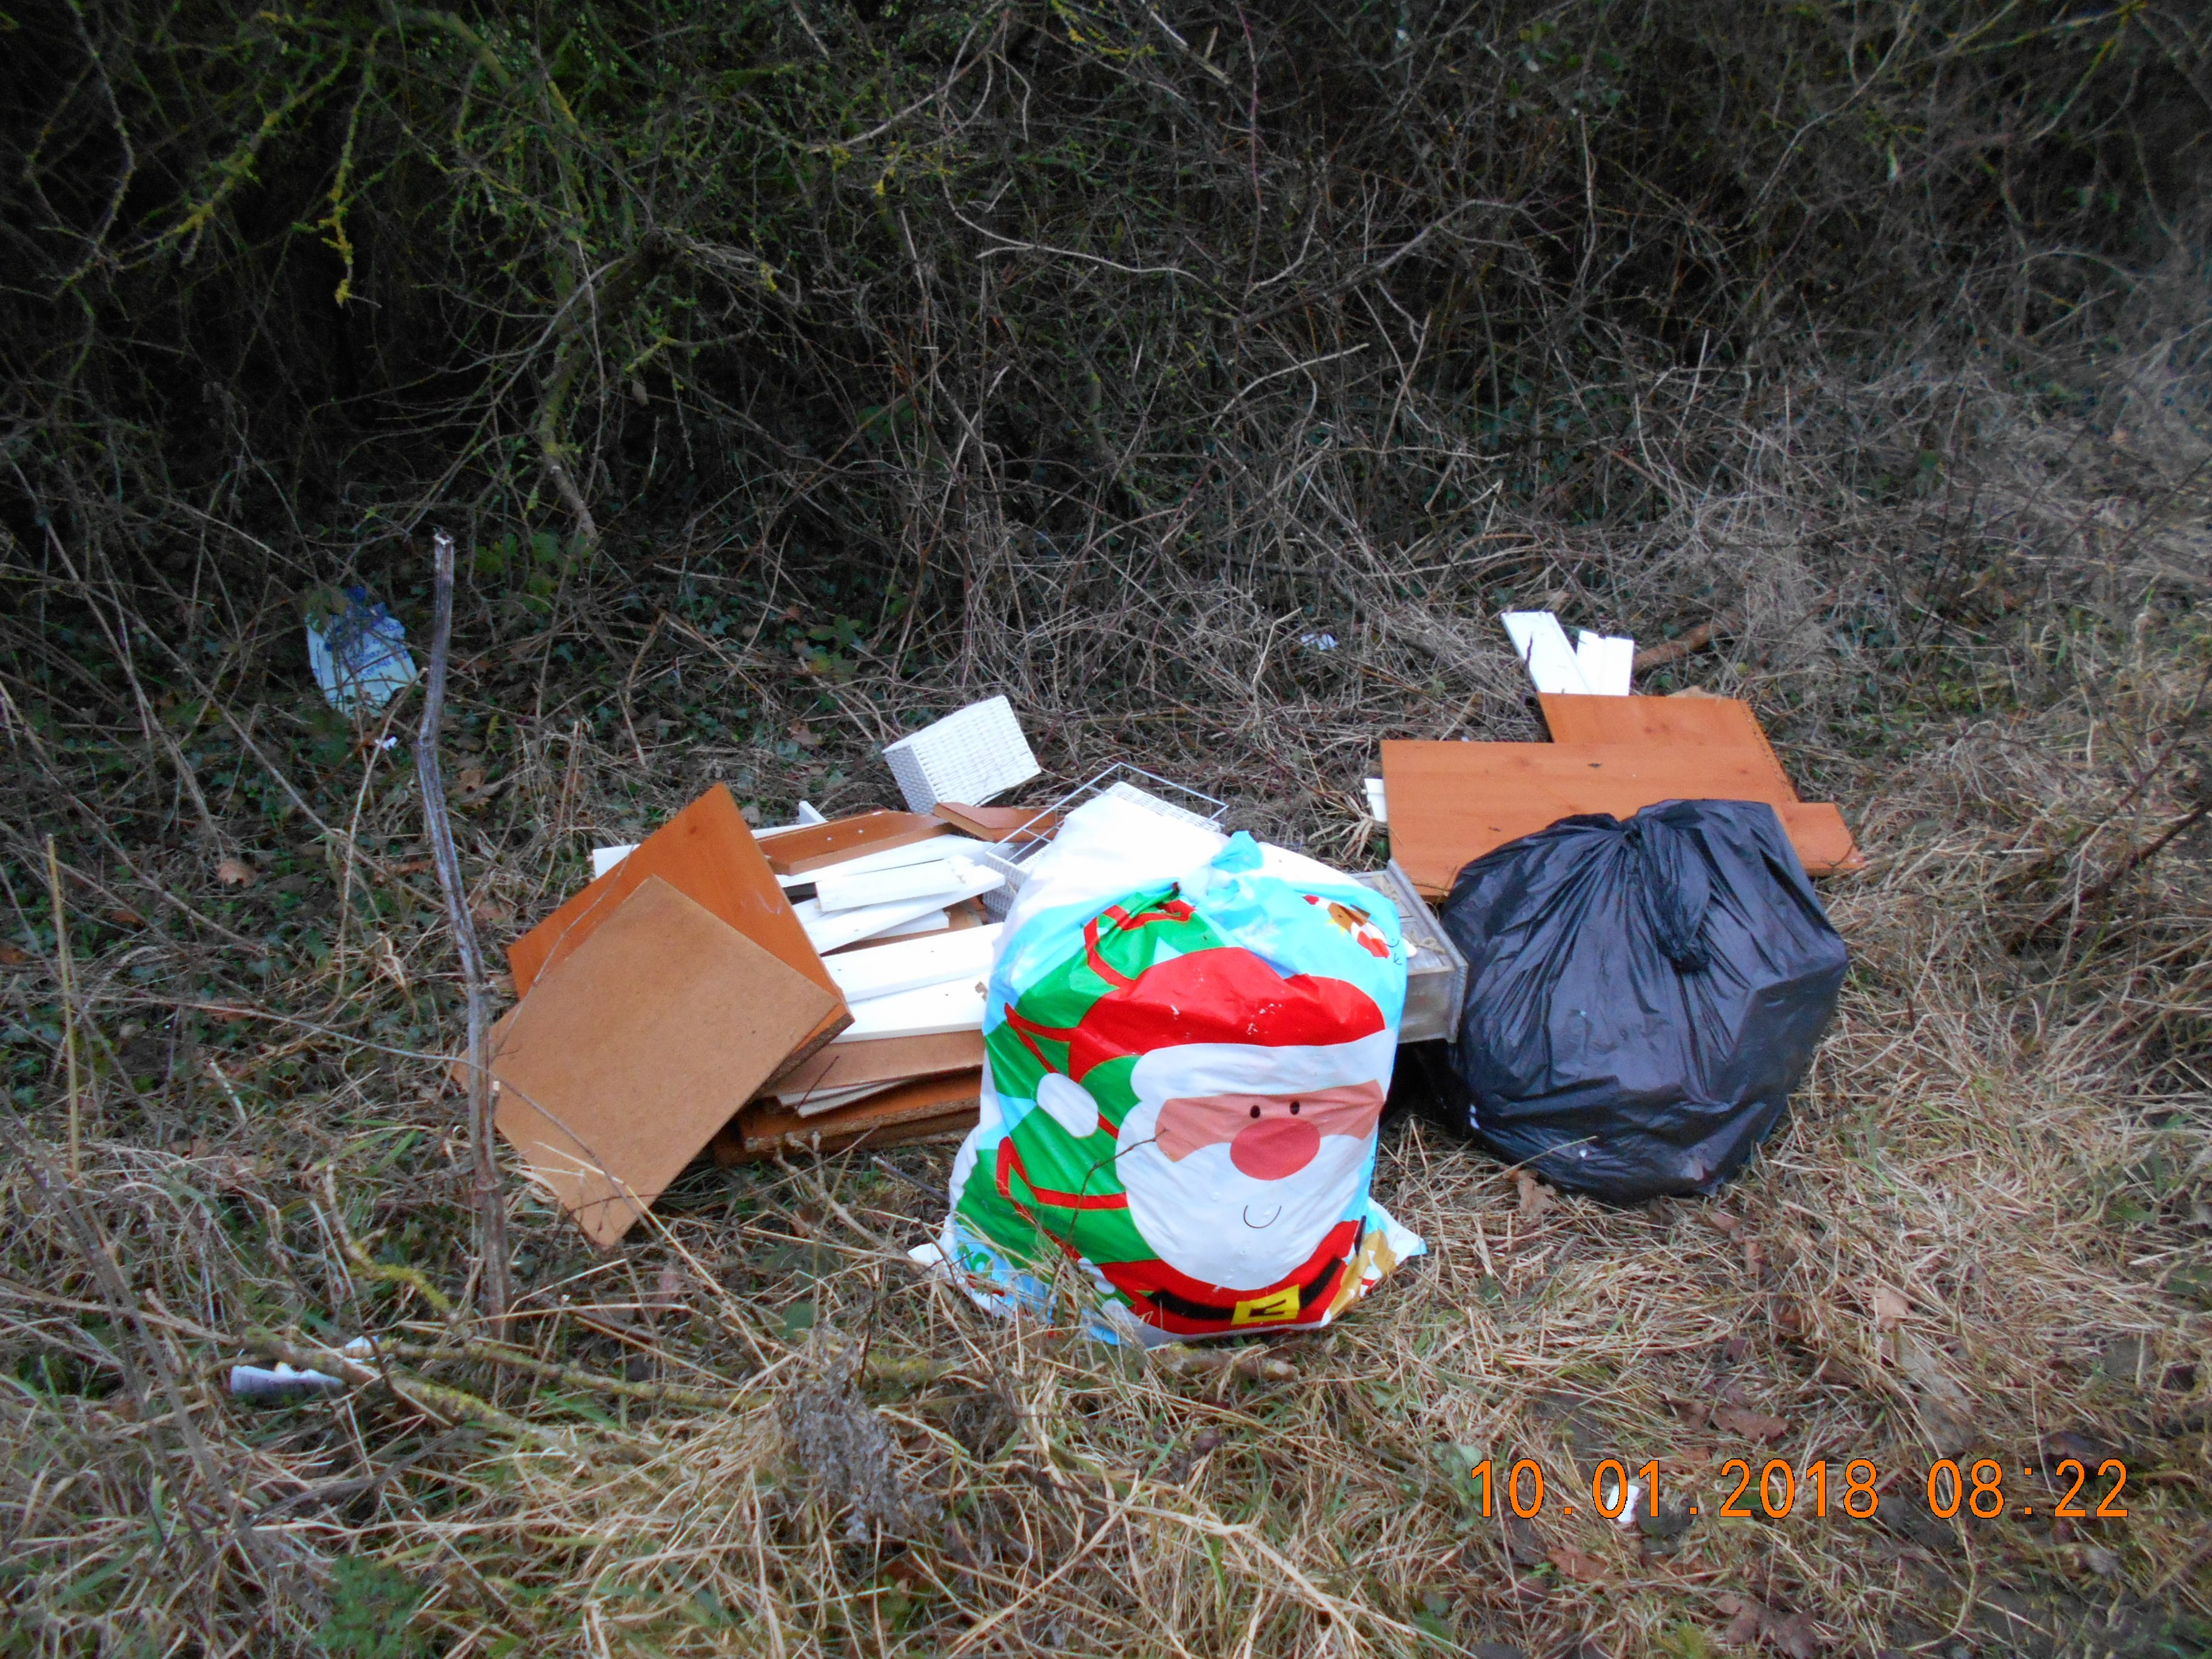 Fly-tipping of household waste results in a bill of £1,557